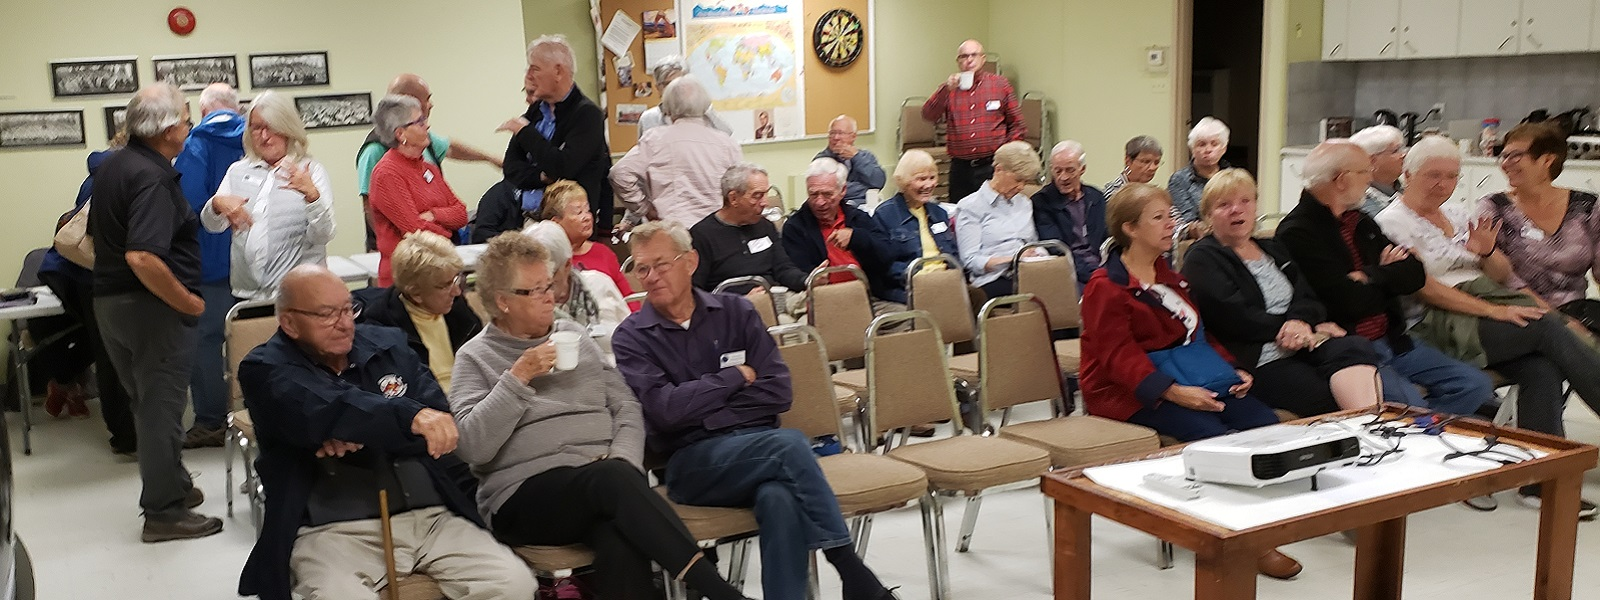 PROBUS 268 AGM - CANCELLED @ Odd Fellows Lodge